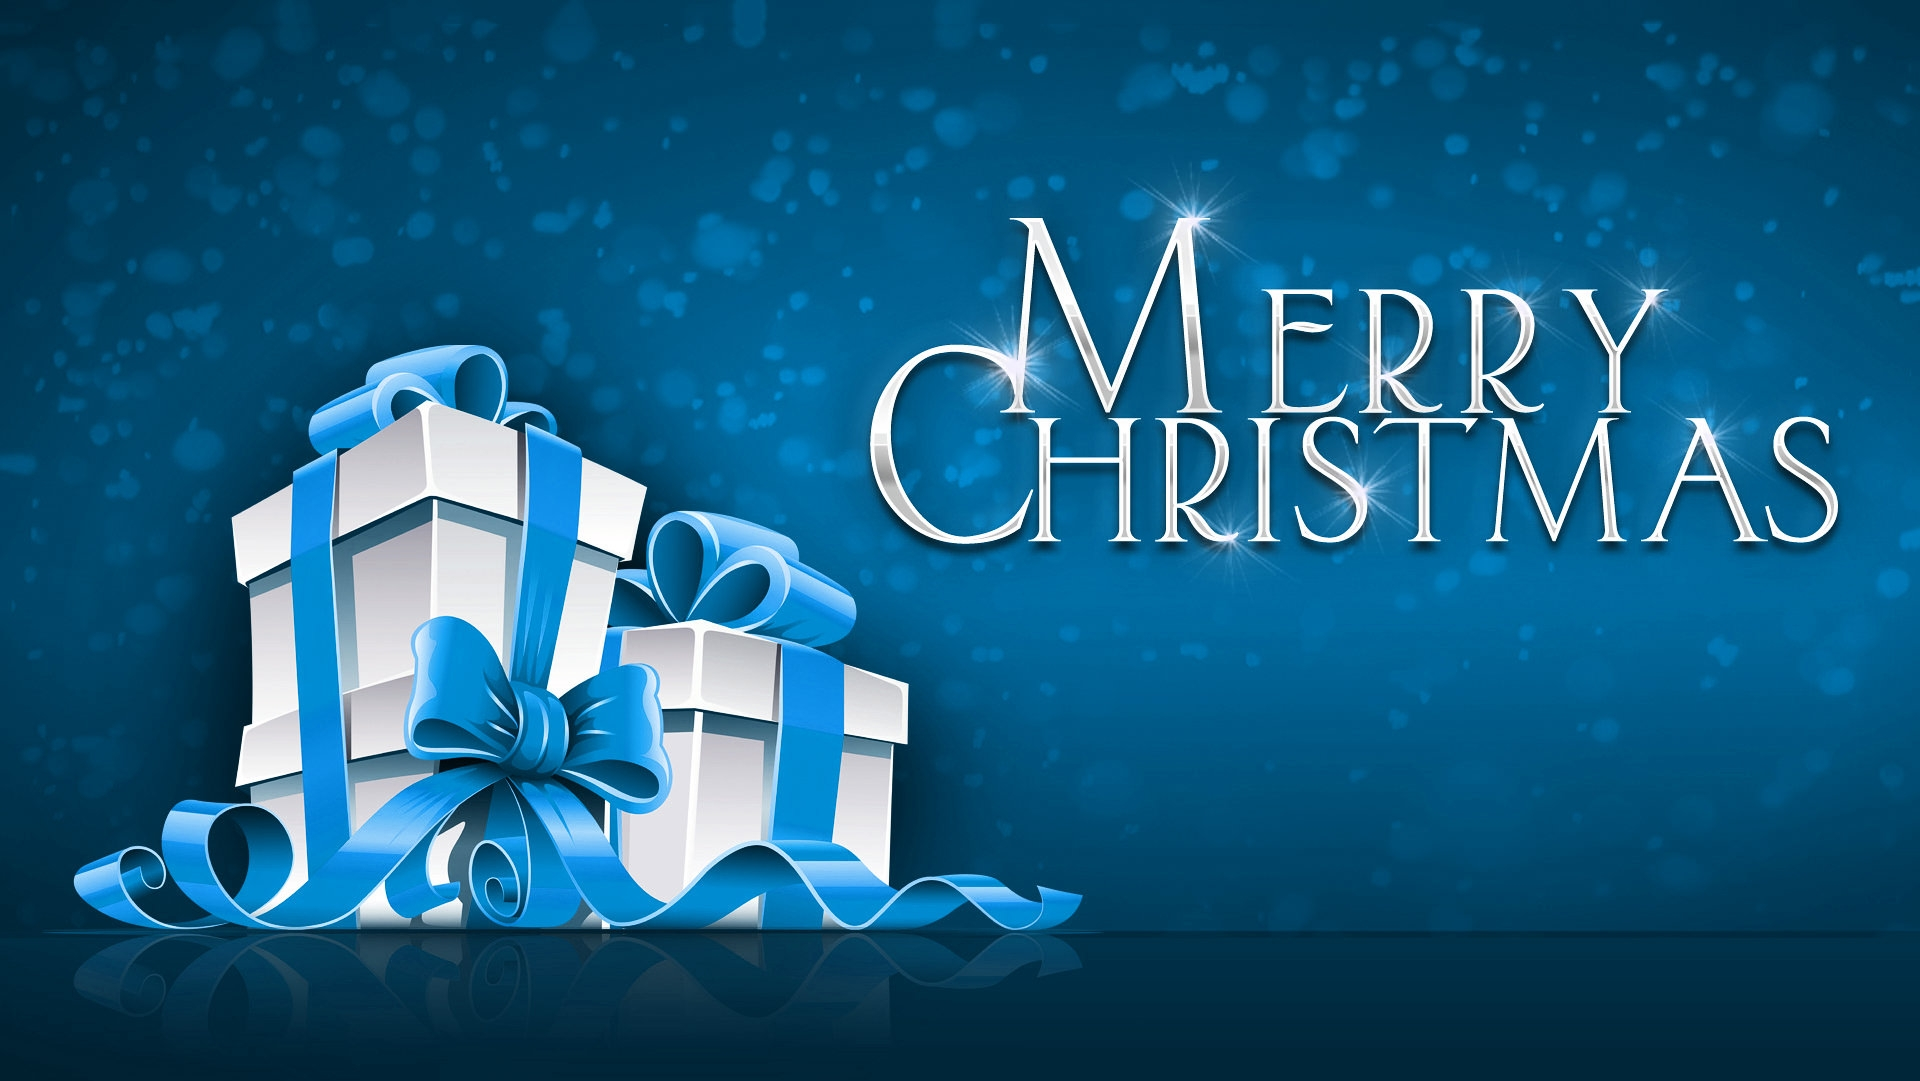 merry christmas widescreen desktop wallpaper